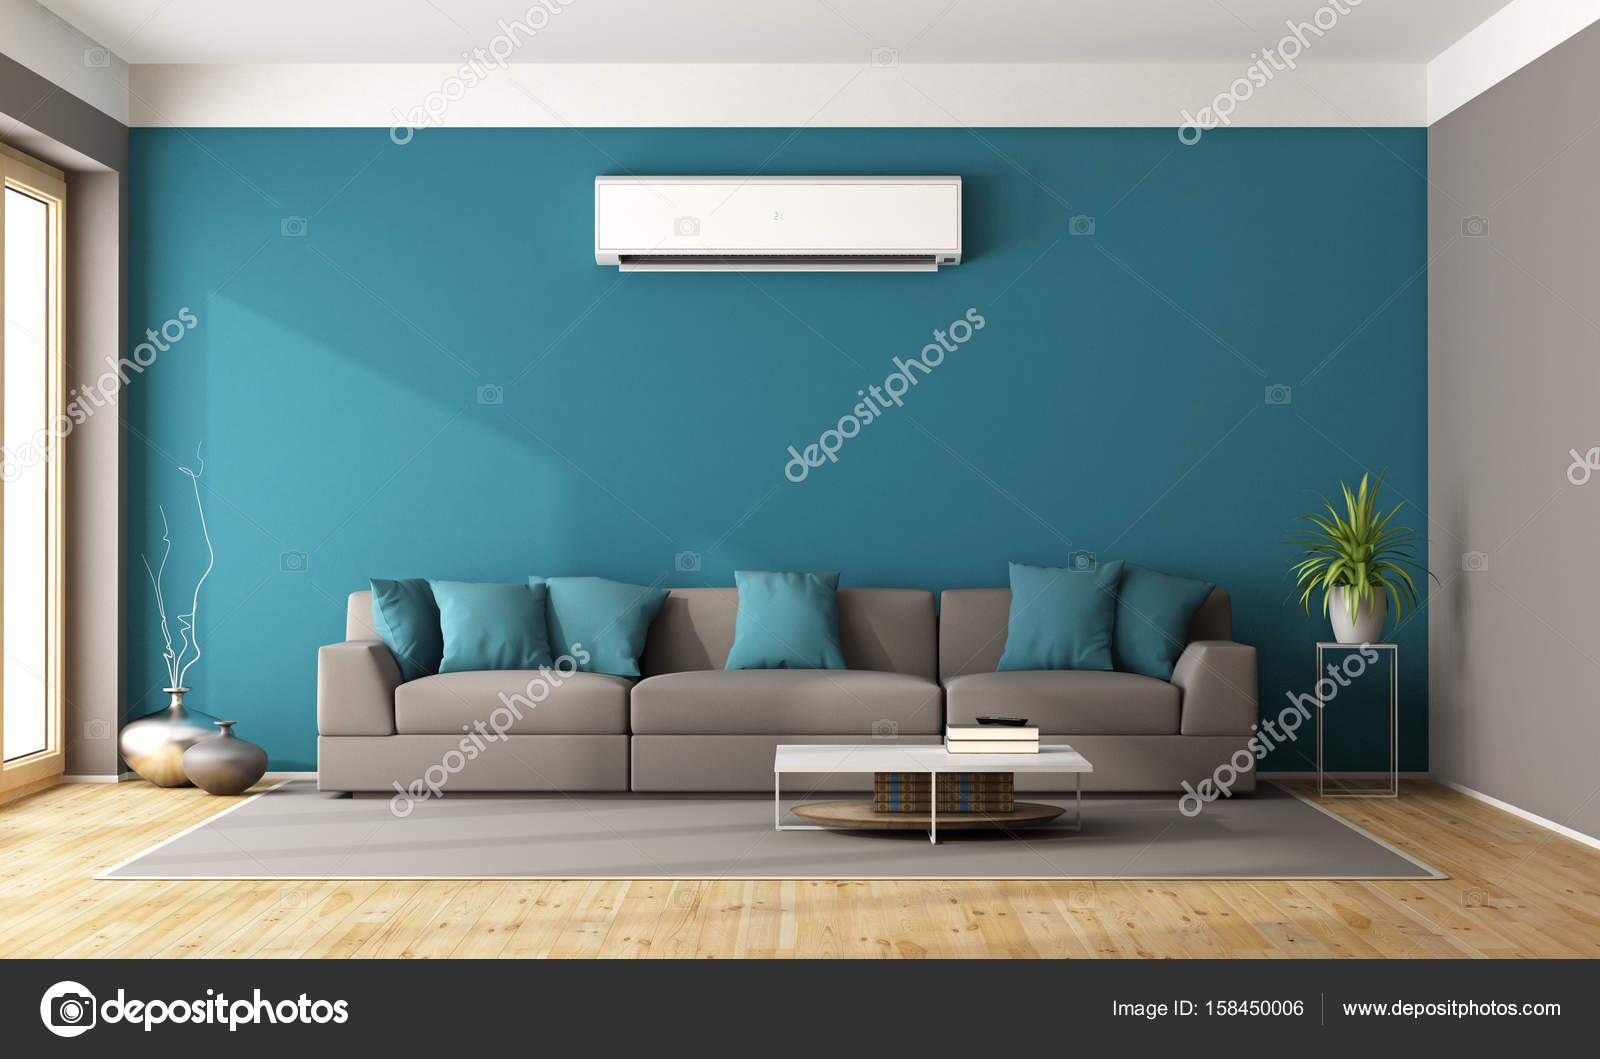 conditioner living with contemporary stock for room rendering free brown image royalty air illustration